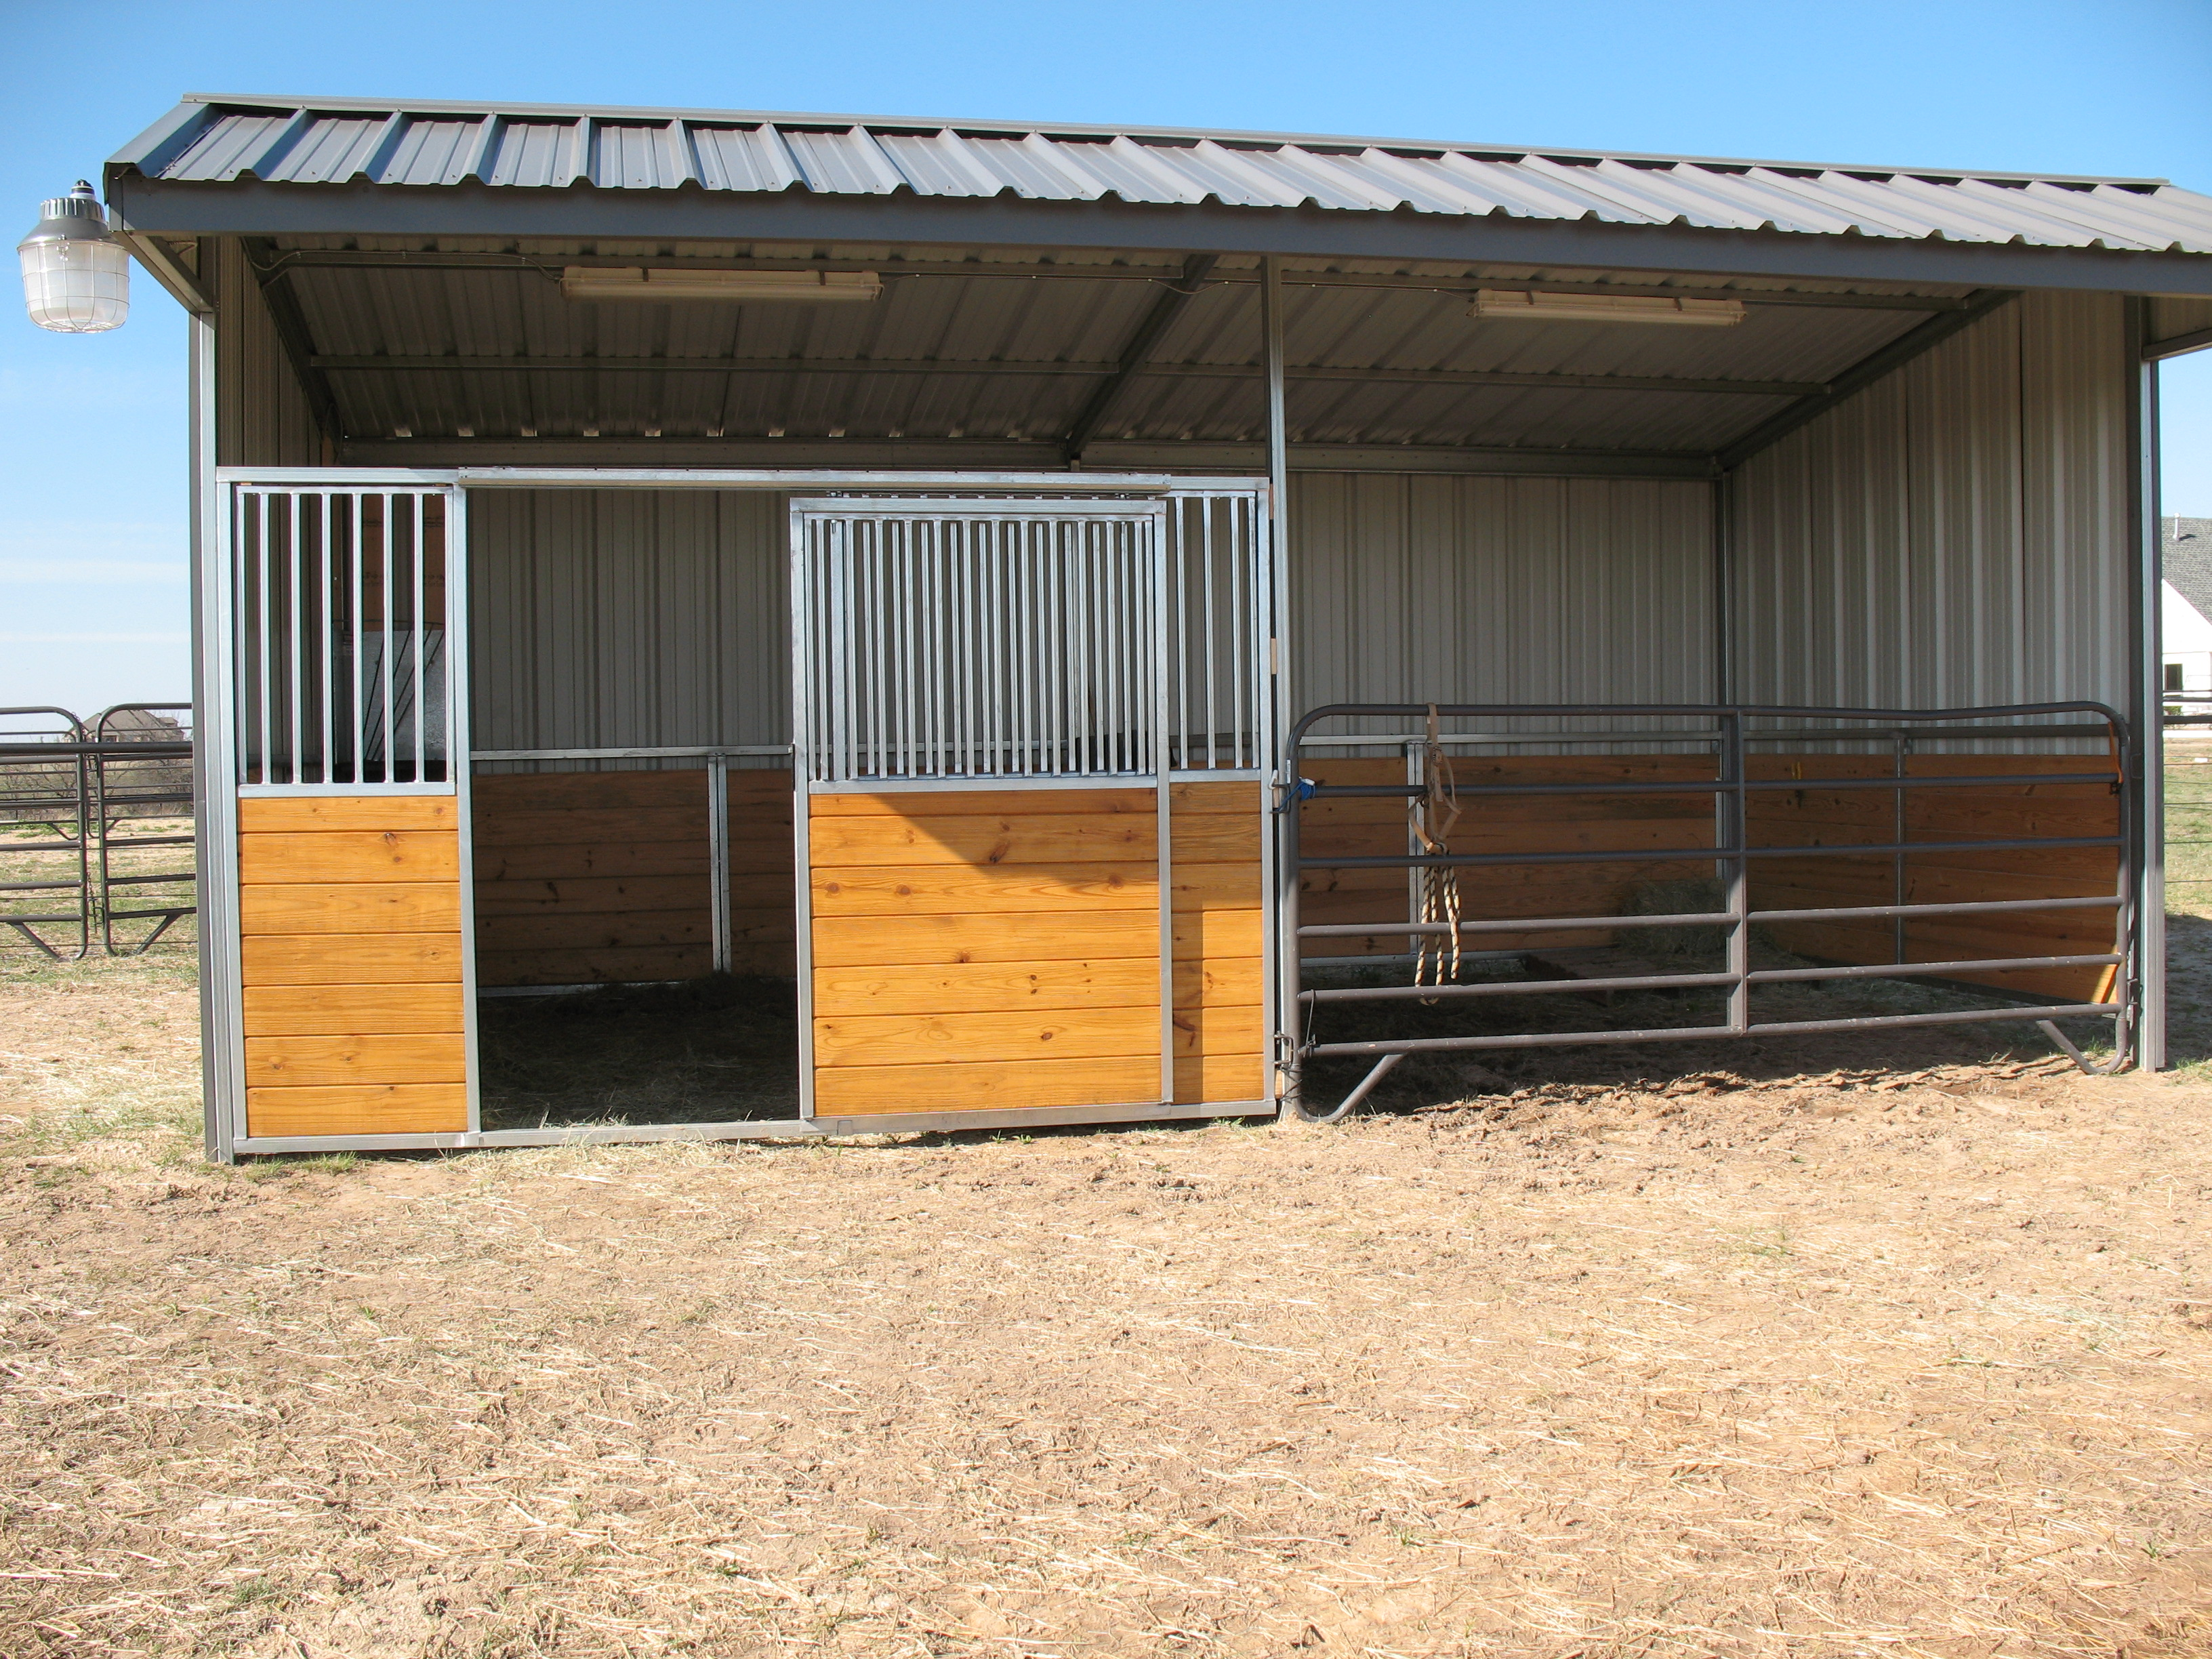 keystone horse equine hardware kits sheds in for sale shed barns and door run home